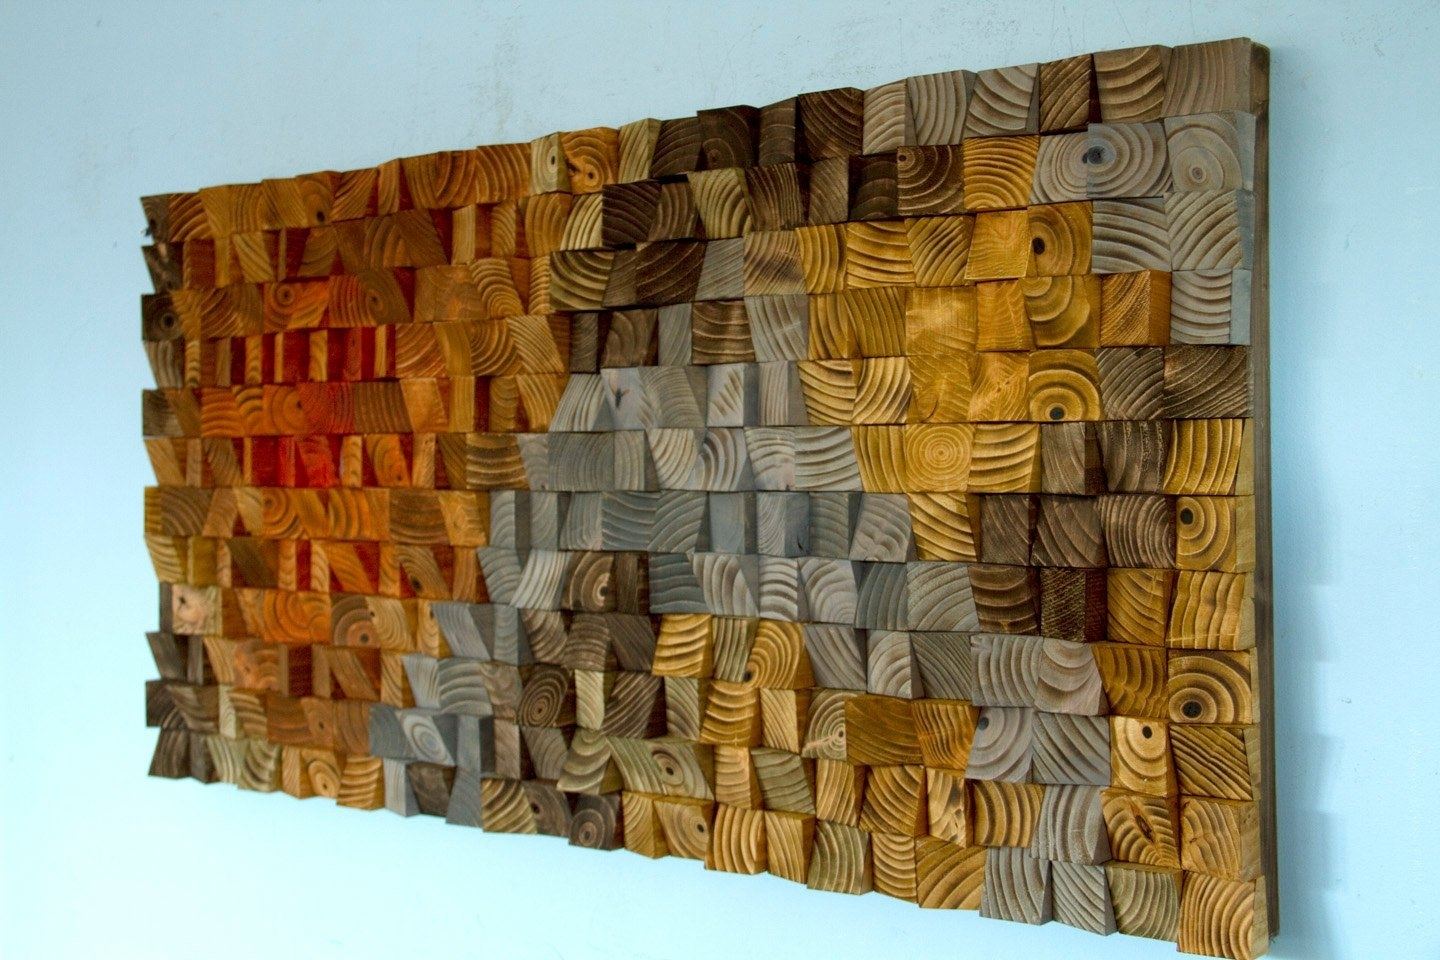 Rustic Wood Wall Art, Wood Wall Sculpture, Abstract Wood Art Pertaining To Most Popular Wood Art Wall (View 3 of 15)